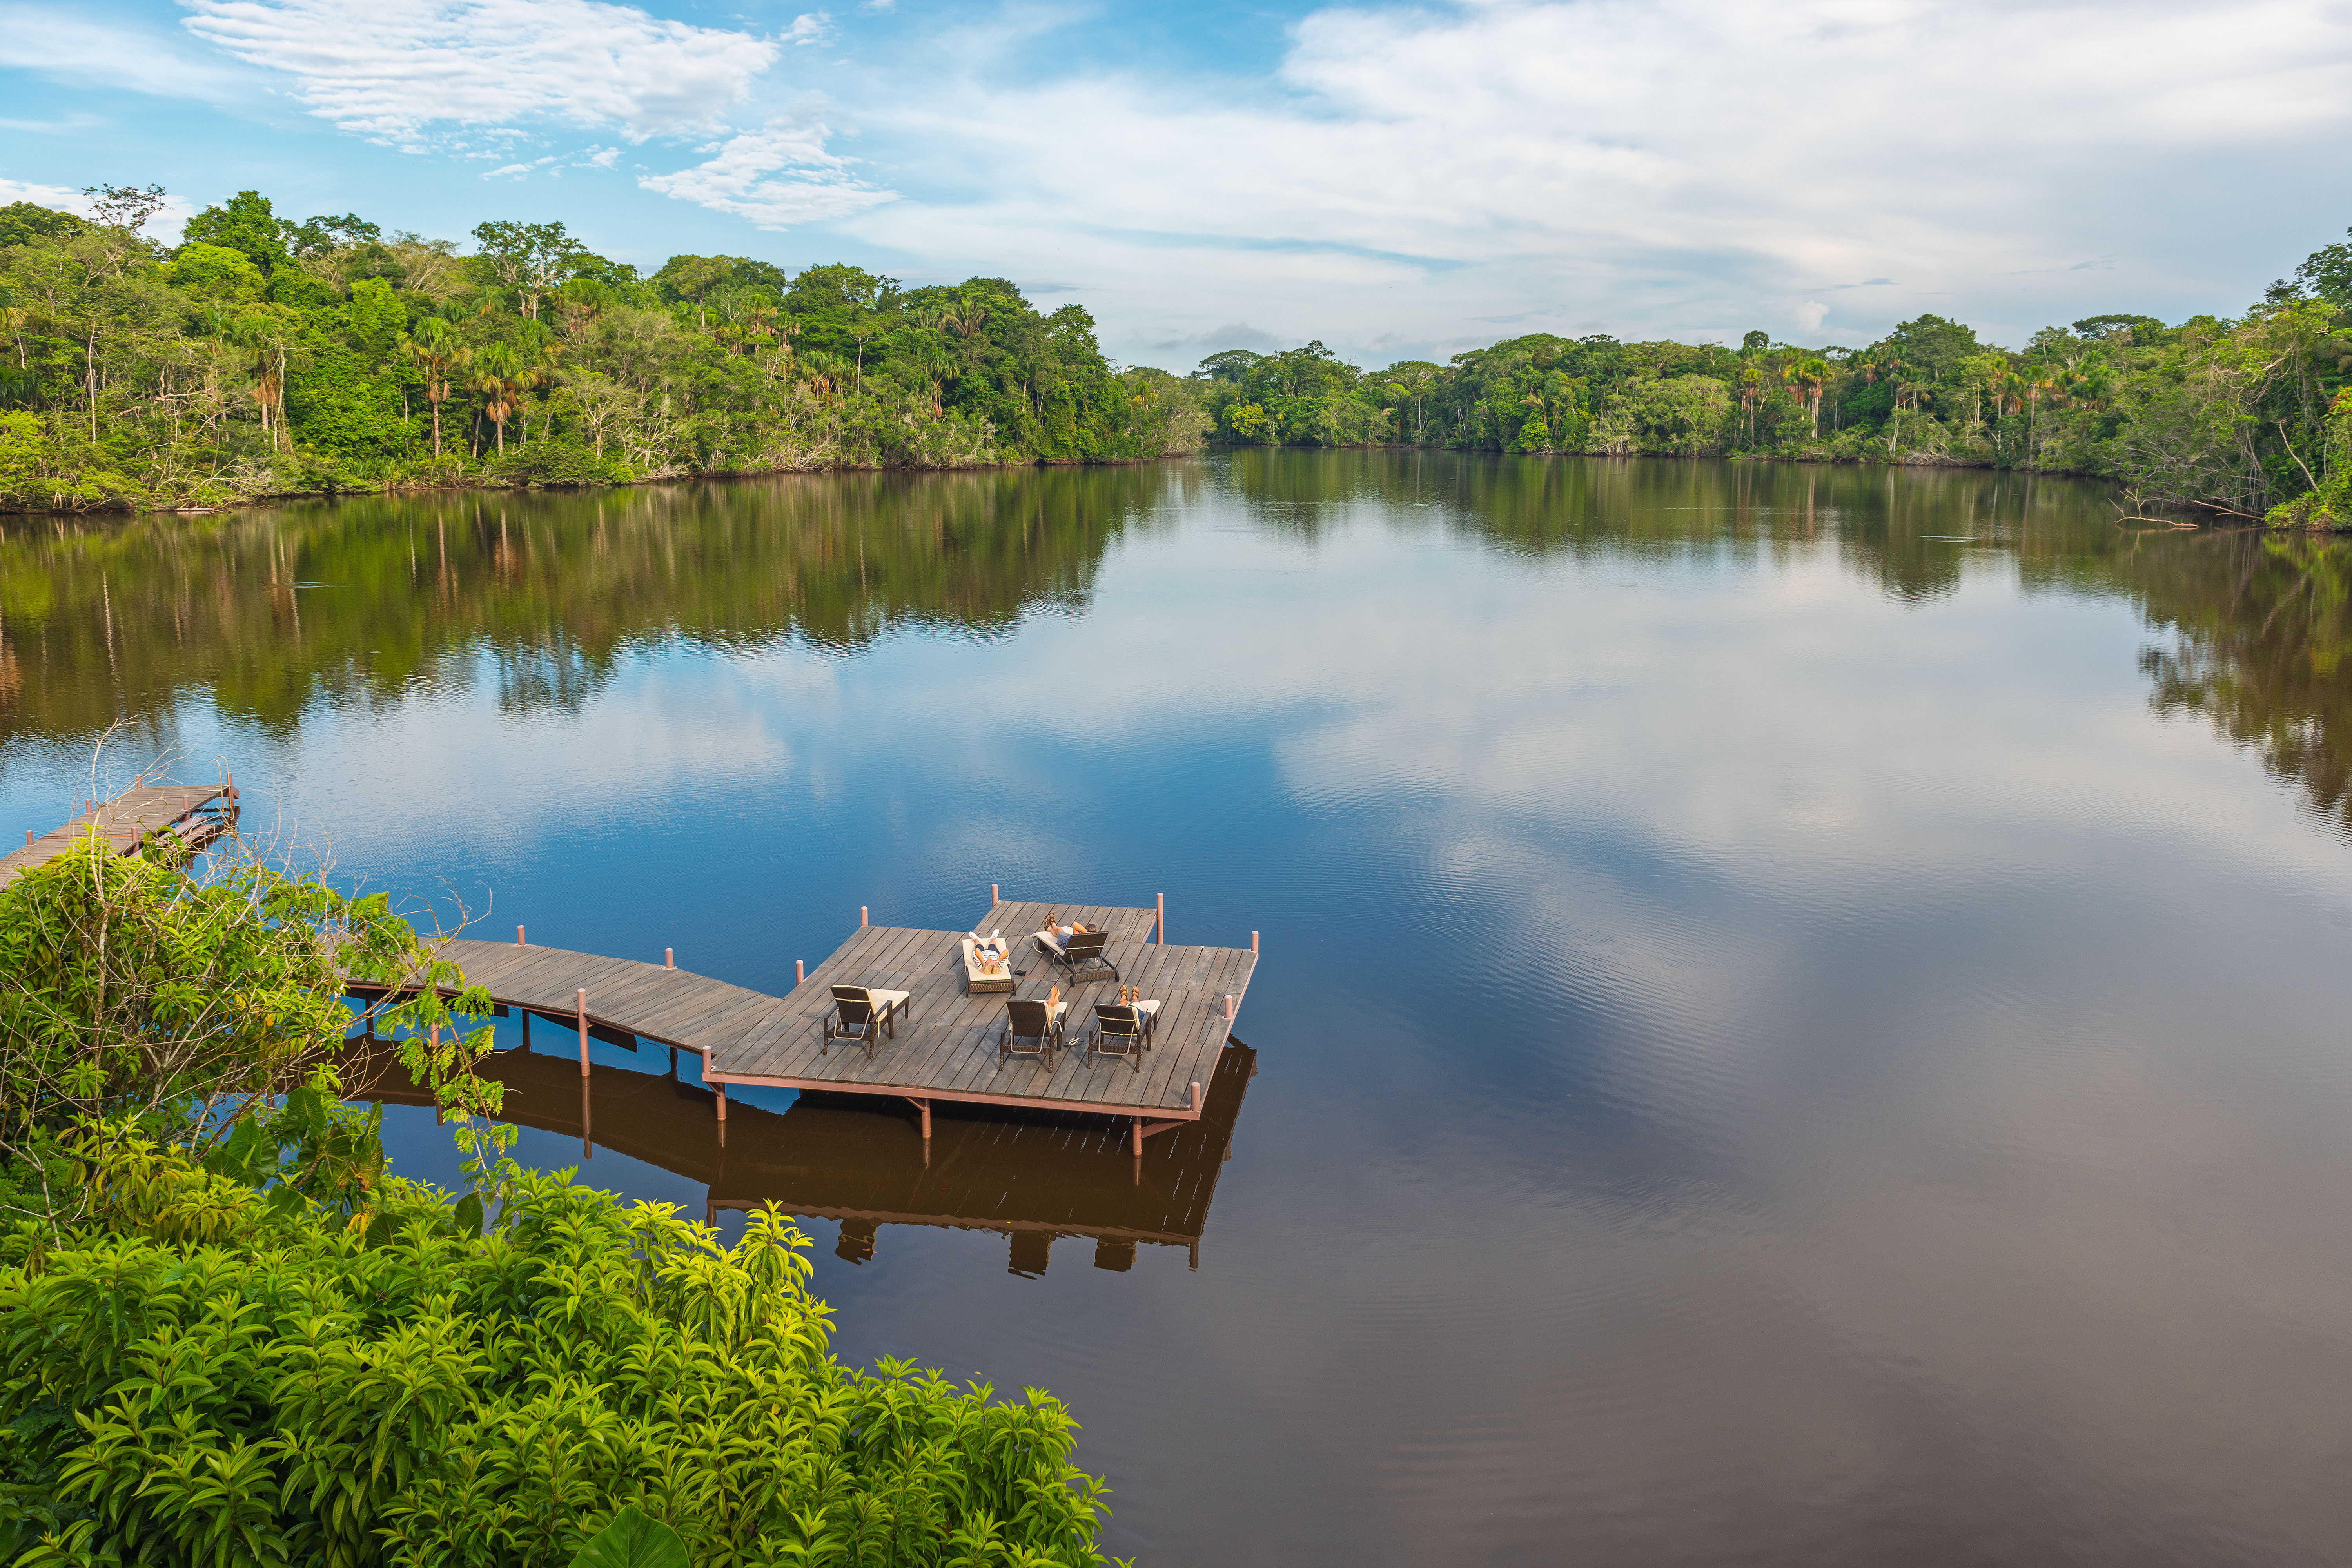 Explore the Amazon: Aerial view of an Amazon lodge